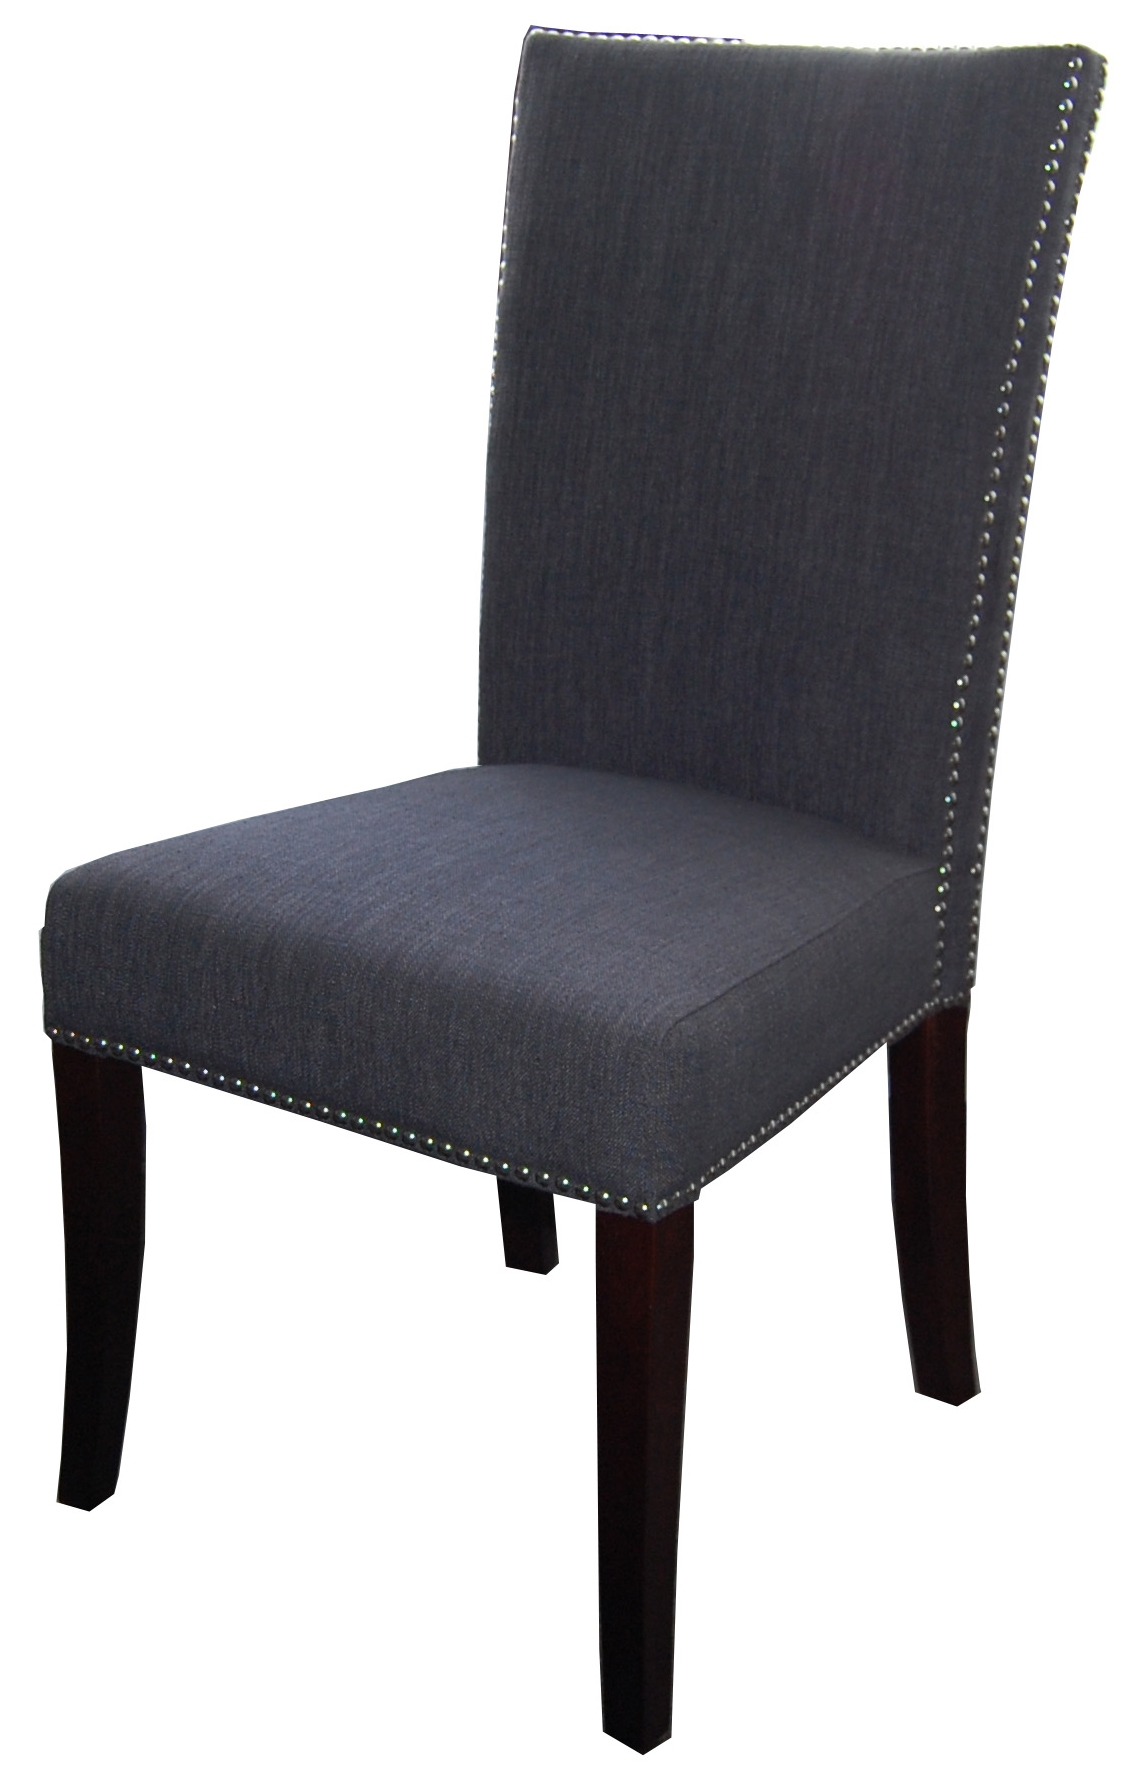 Rv Chair Rv 3005 High Fabric Fabric Dining Chair